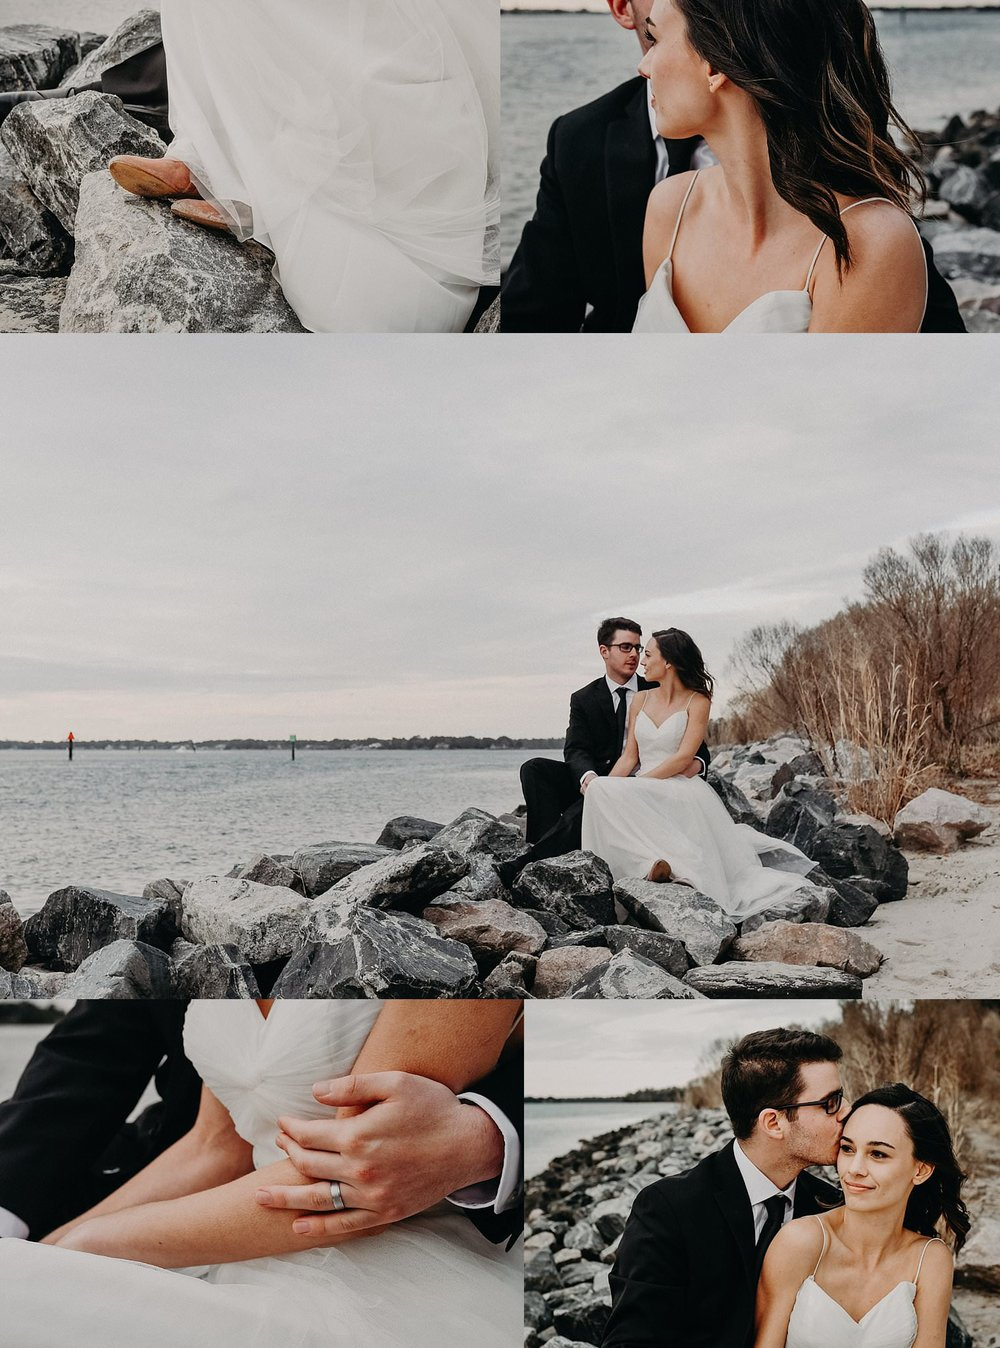 wedding-photos-first-landing-state-park-virginia-beach-elopement-session-melissa-bliss-photography.jpg